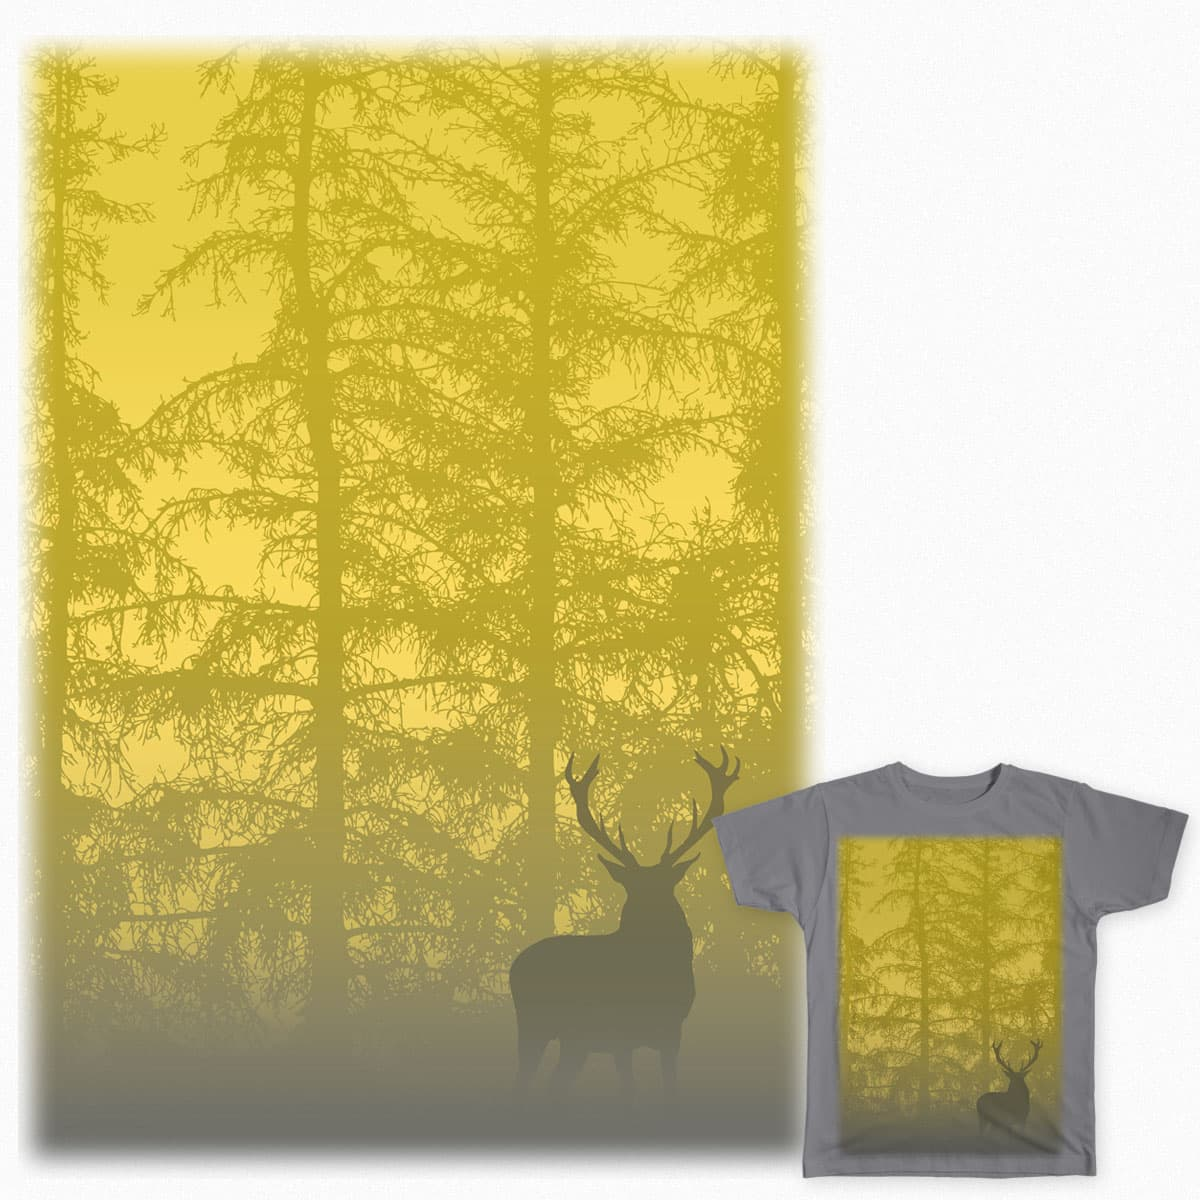 The Stag by louise.kelly.1291 on Threadless